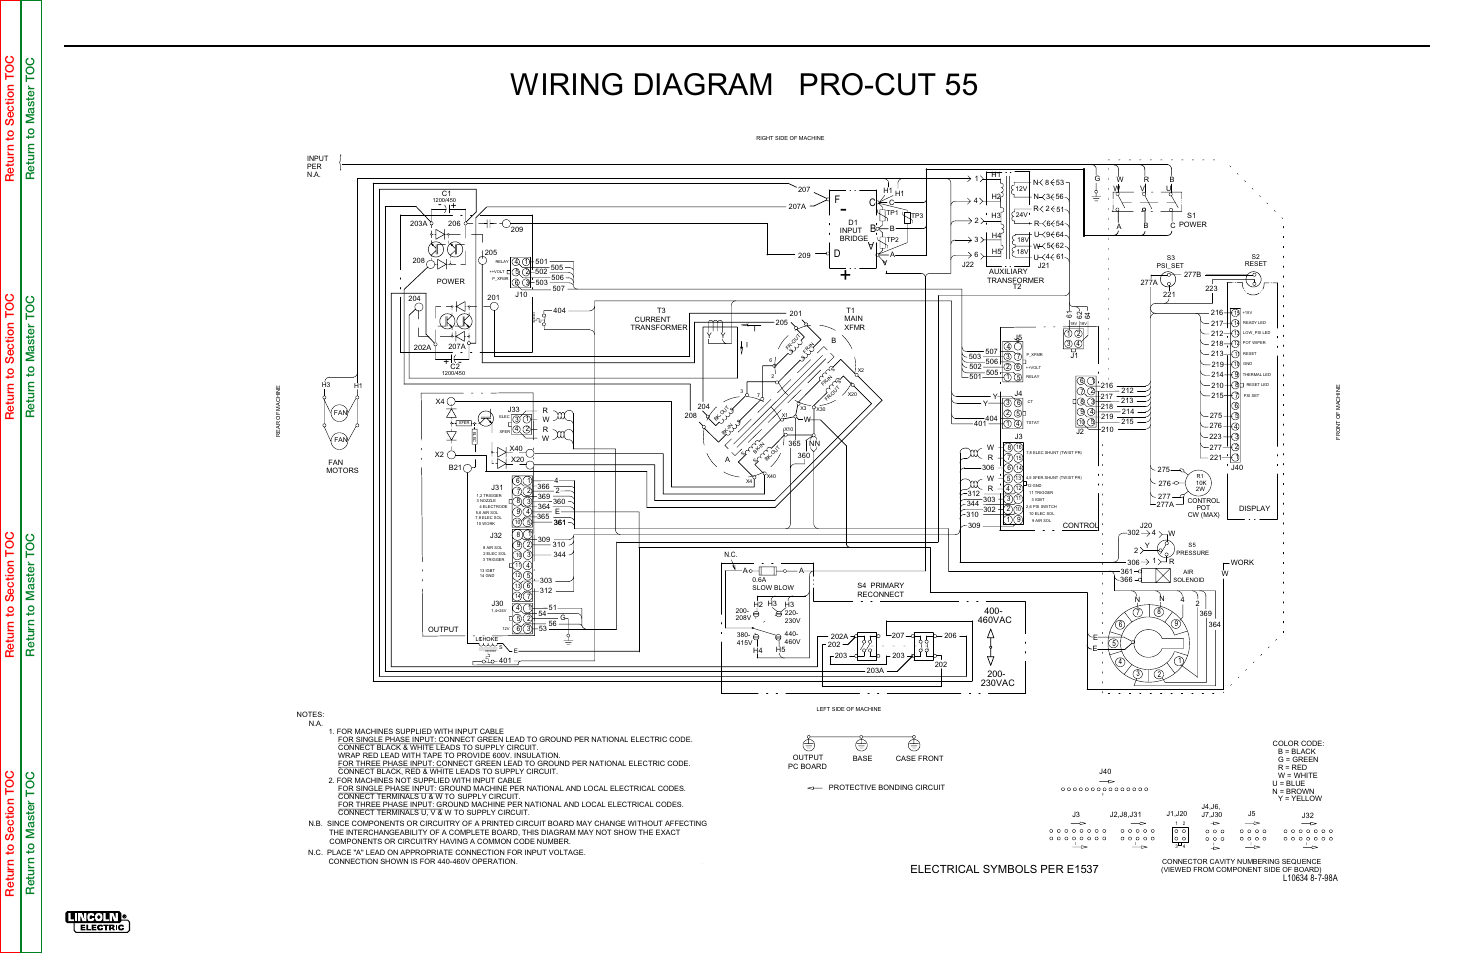 wire 100 breaker in panel box further 50 rv plug wiring diagram